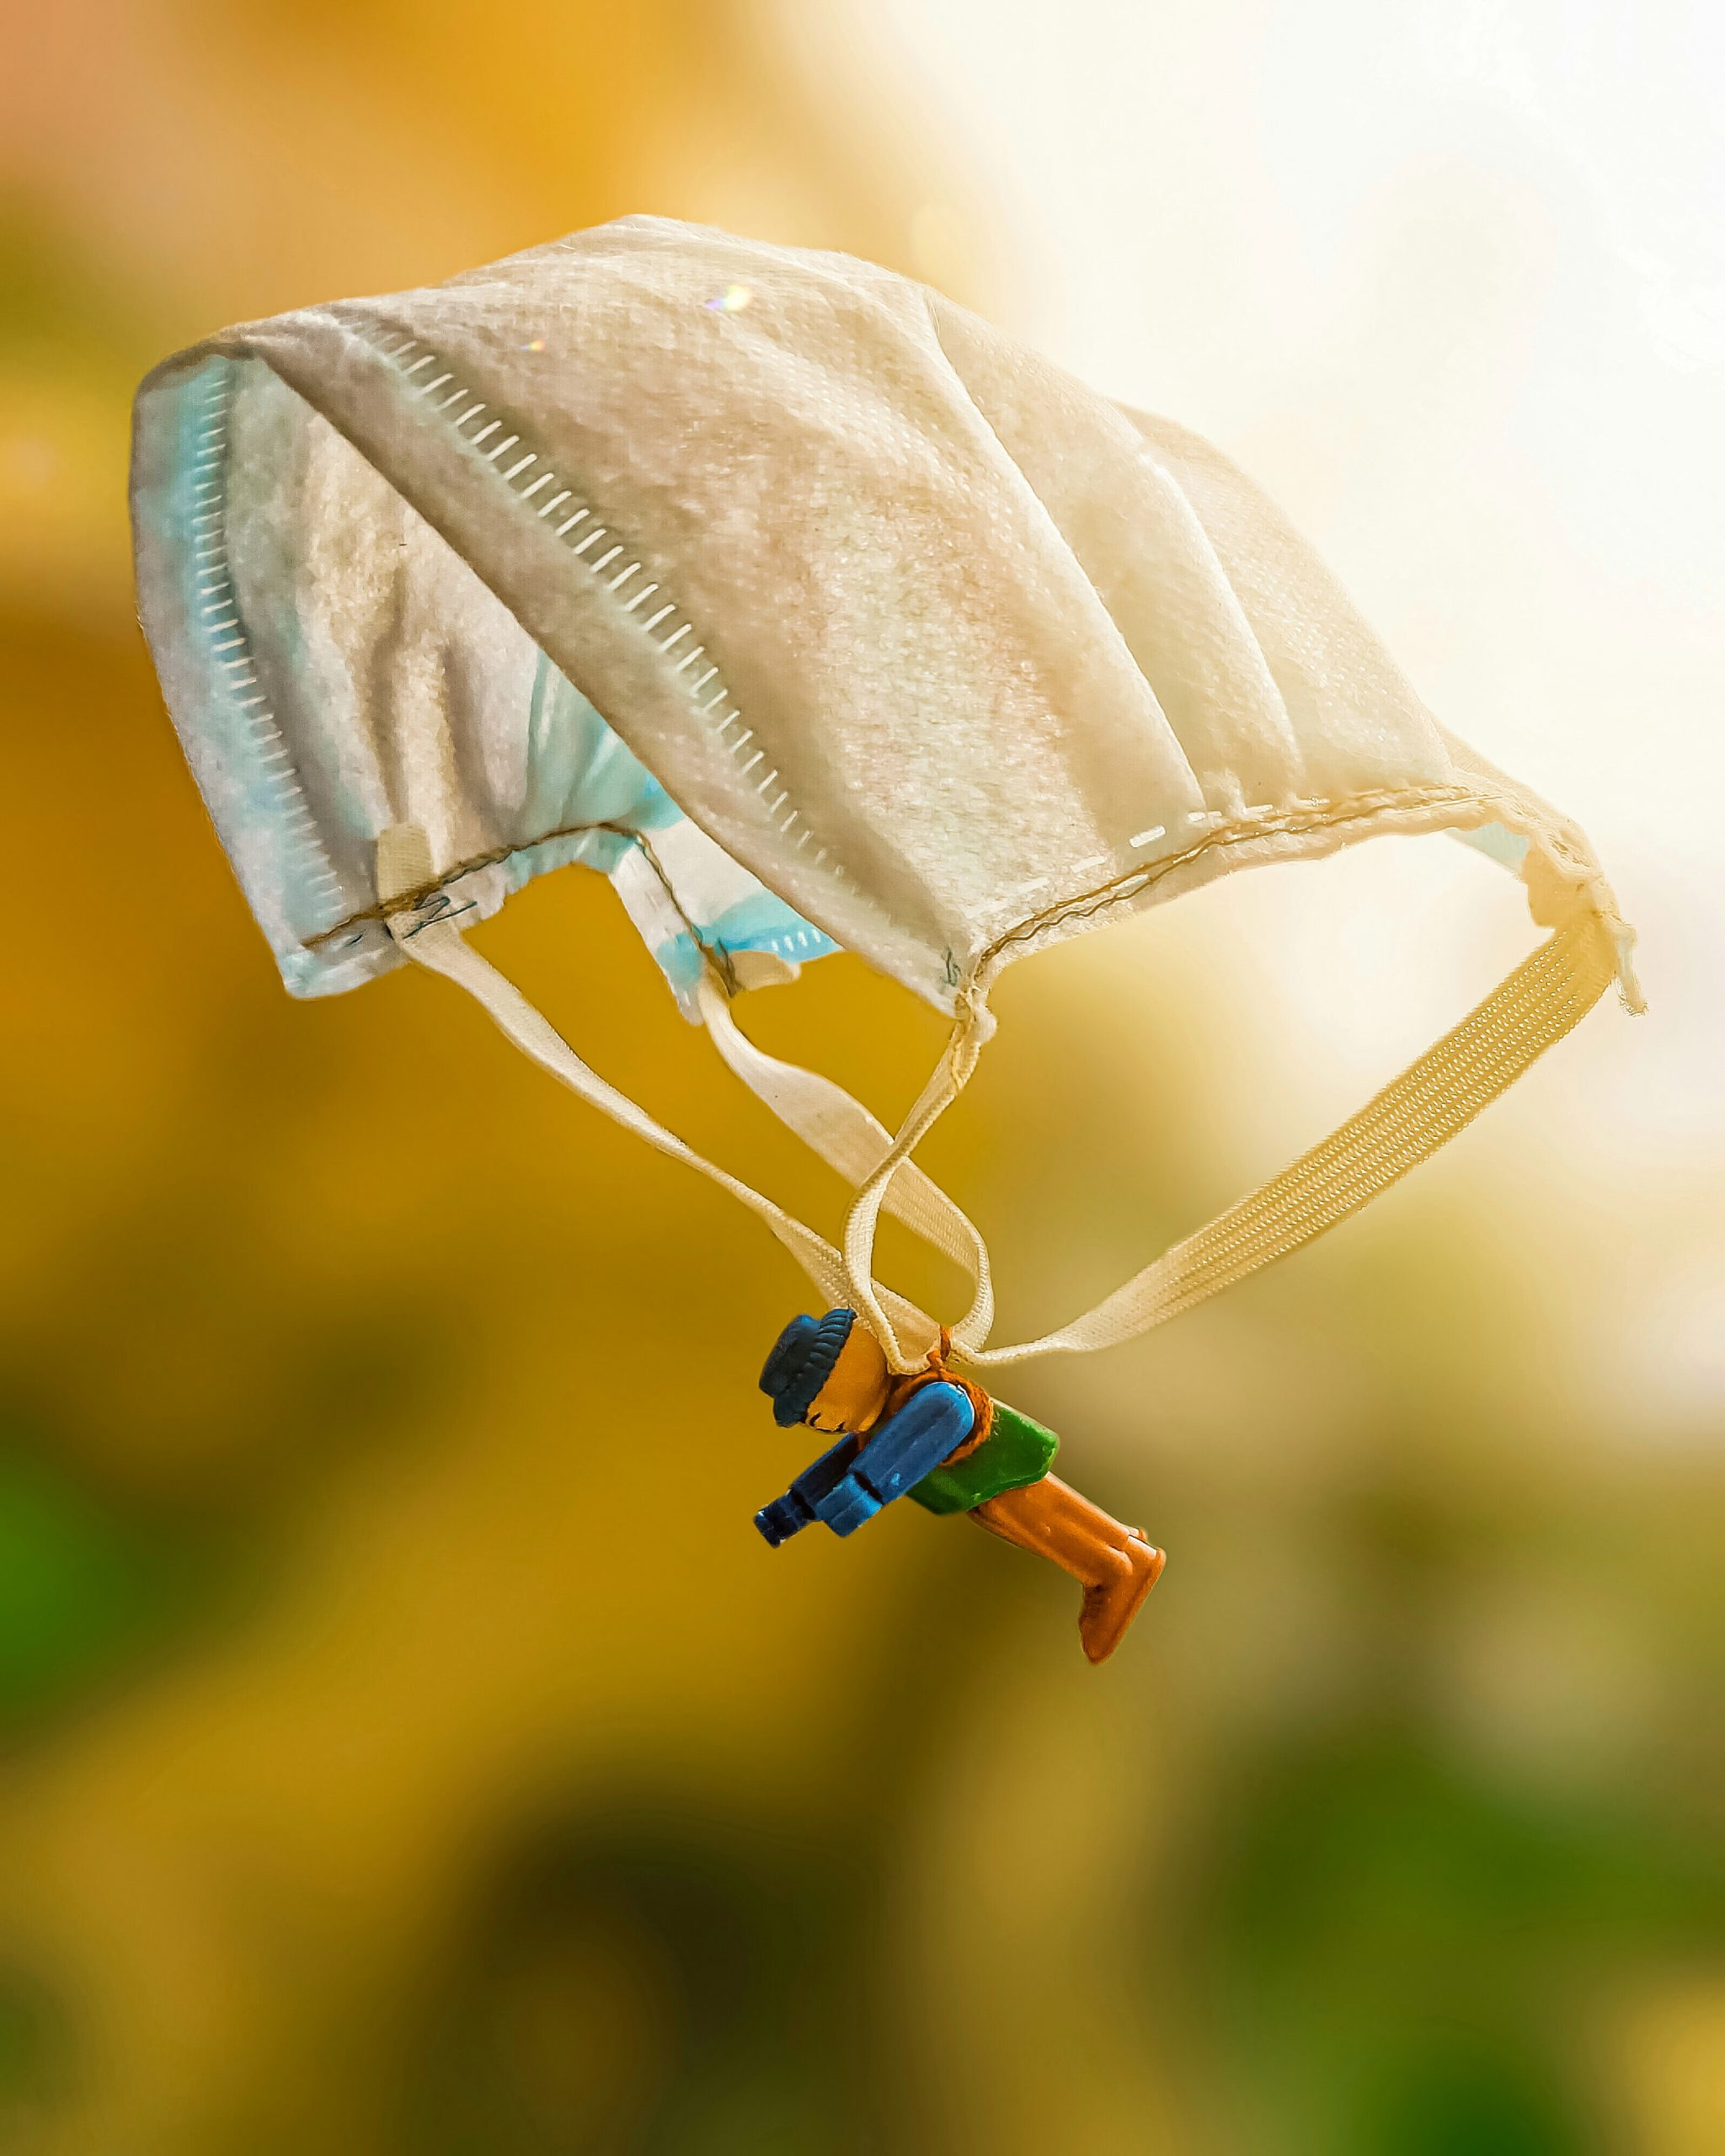 Lego toy using mask as a Parachute